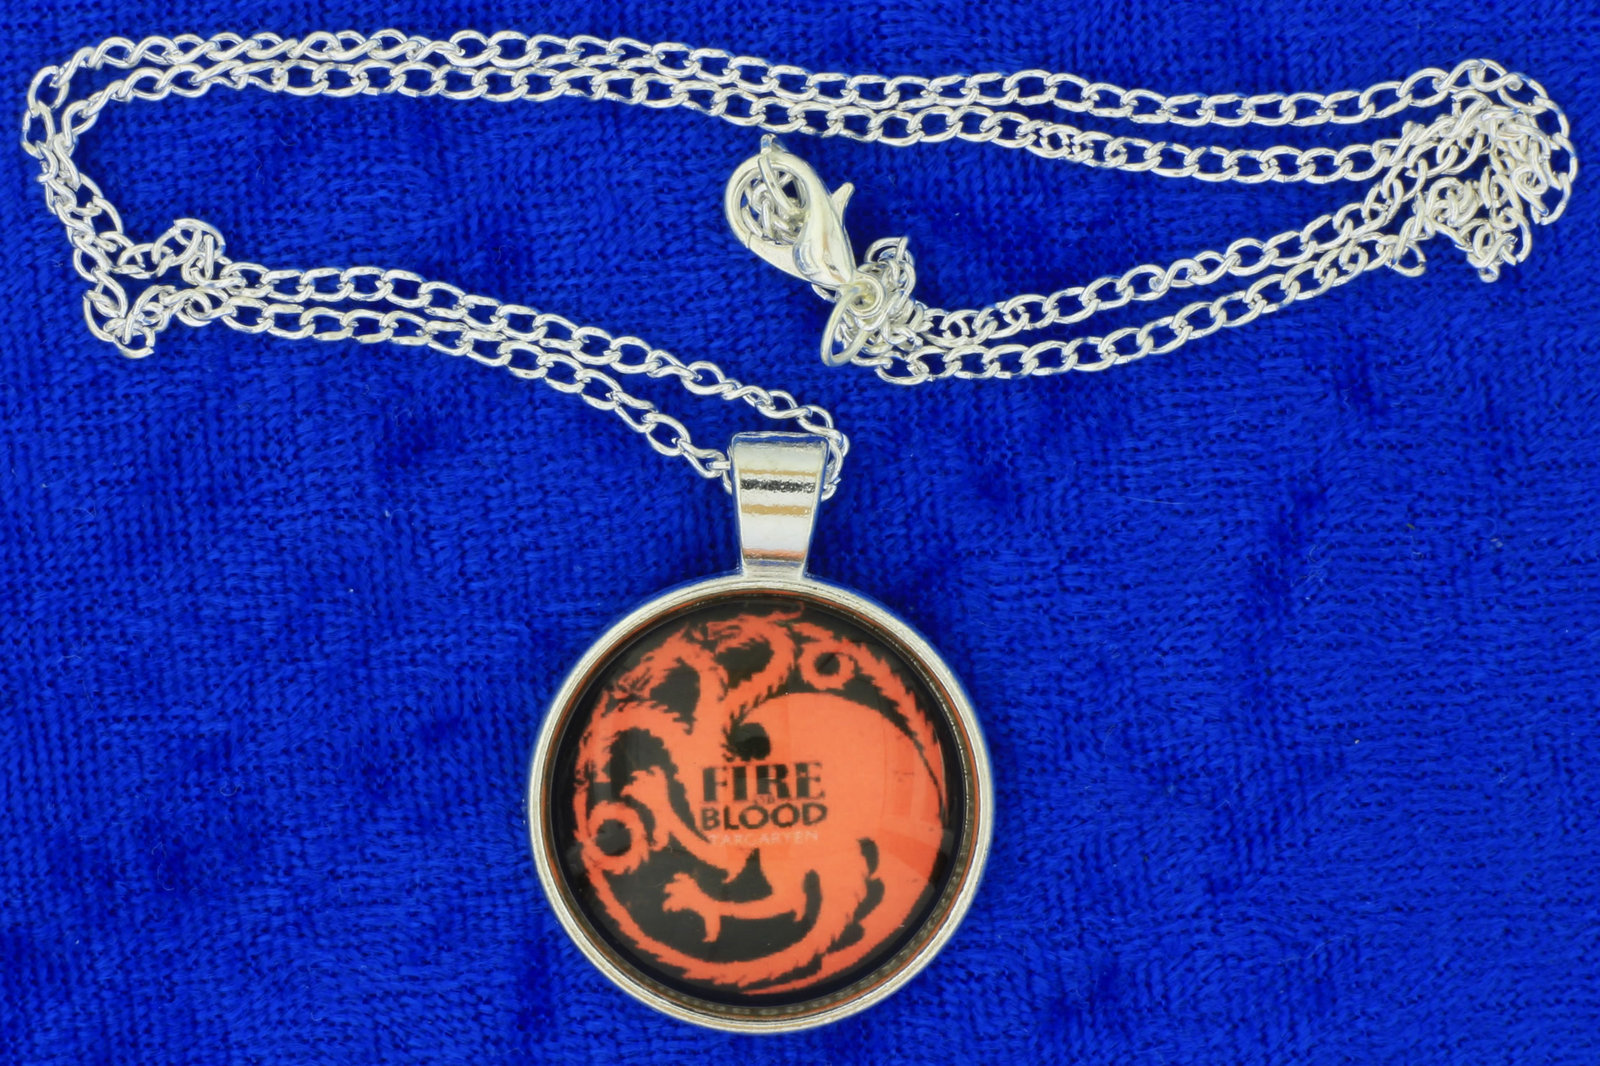 Targaryen fire   blood dragon cabochon necklace silver